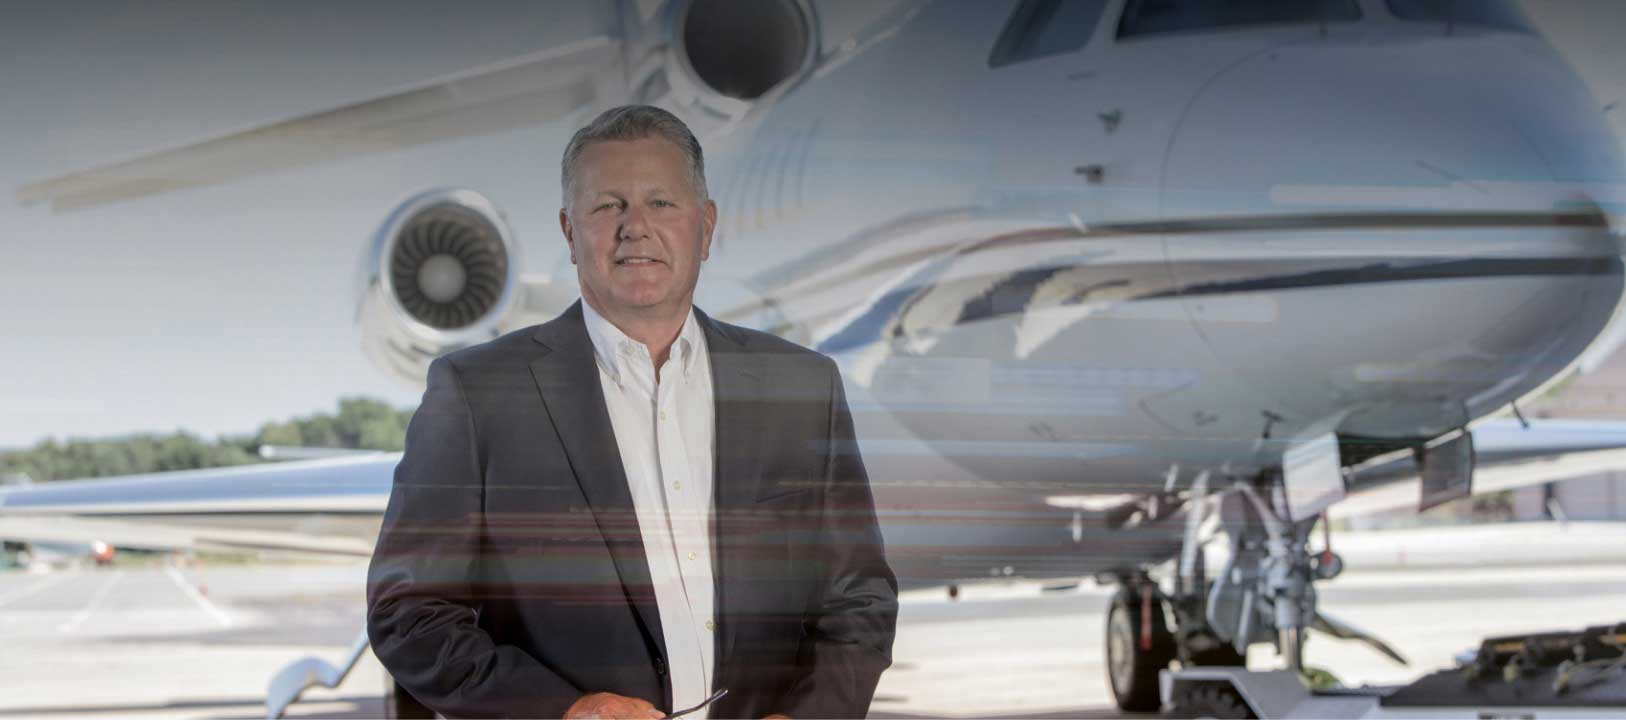 Shawn Vick • Chief Executive Officer • Global Jet Capital